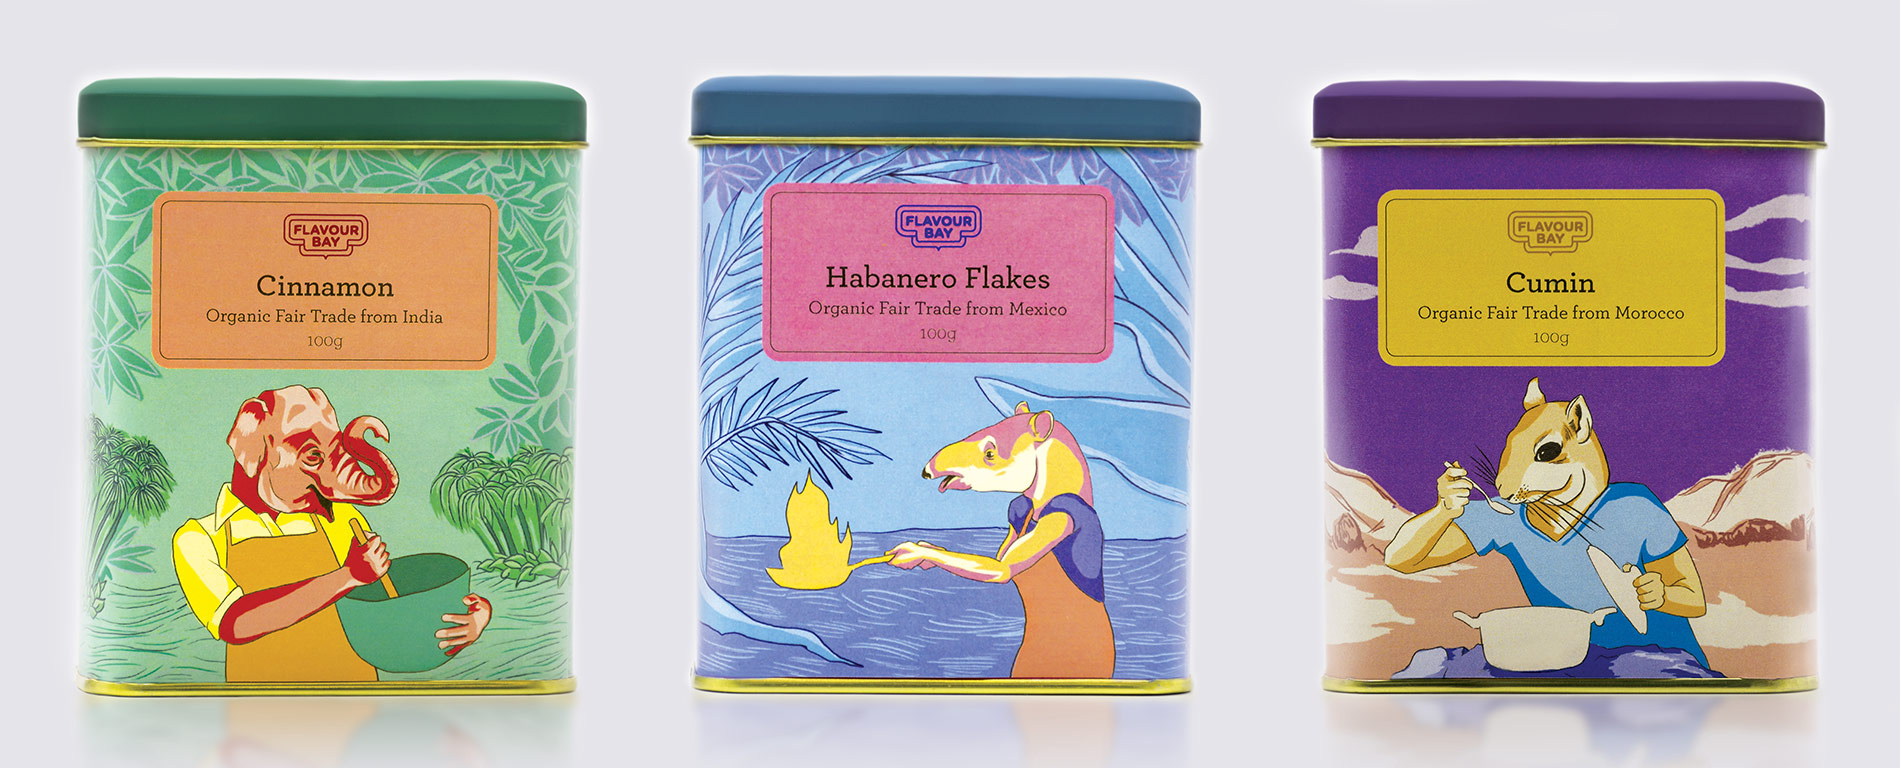 Flavour-Bay-Spice-Packaging-Cinammon-Illustration-and-Design-Front-Mockup-by-Fiona-Dunnett.jpg